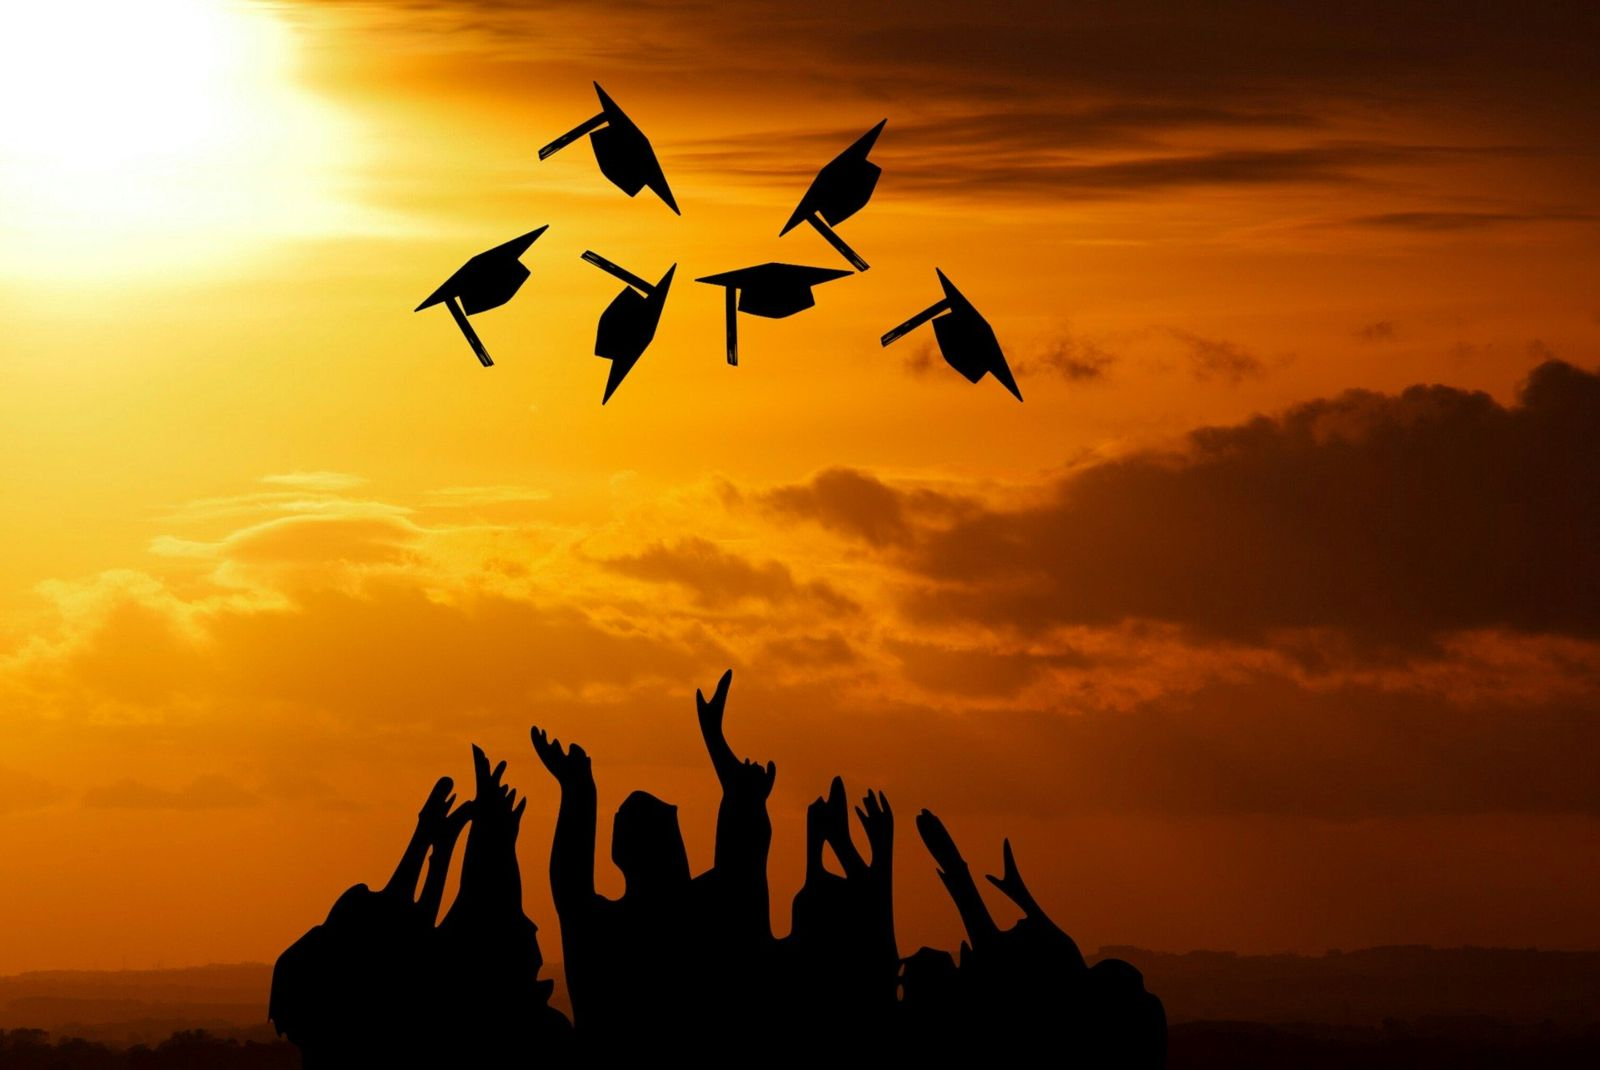 A forest green, hyperlinked, button labeled Diplomas in white, bolded, underlined text with an image of six graduates stand silhouetted in black against a sunrise/sunset with a golden-orange, cloudy sky while throwing their graduation caps in the air.